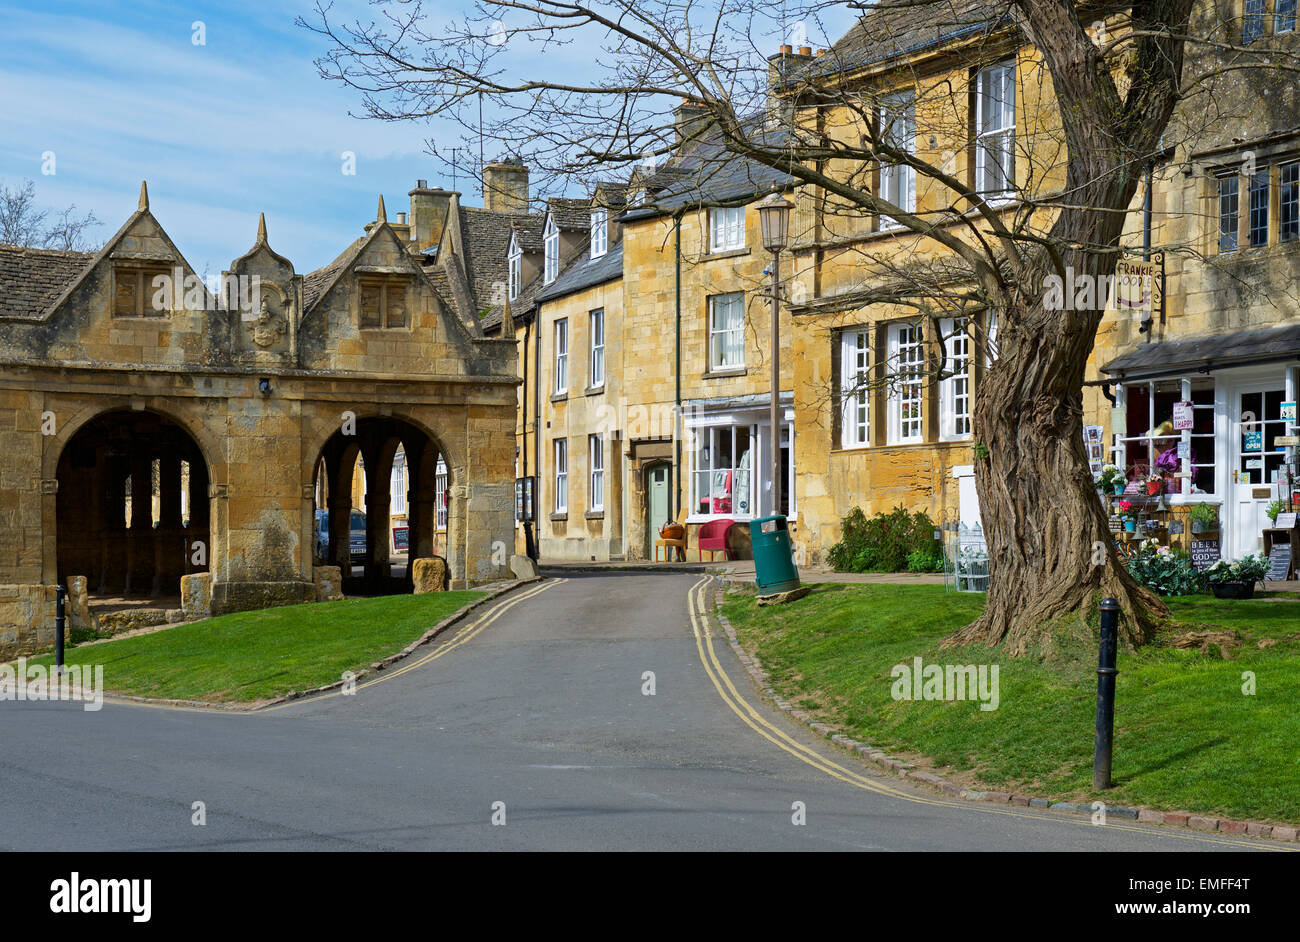 The cloisters in Chipping Campden, Gloucestershire, Cotswolds, England UK Stock Photo